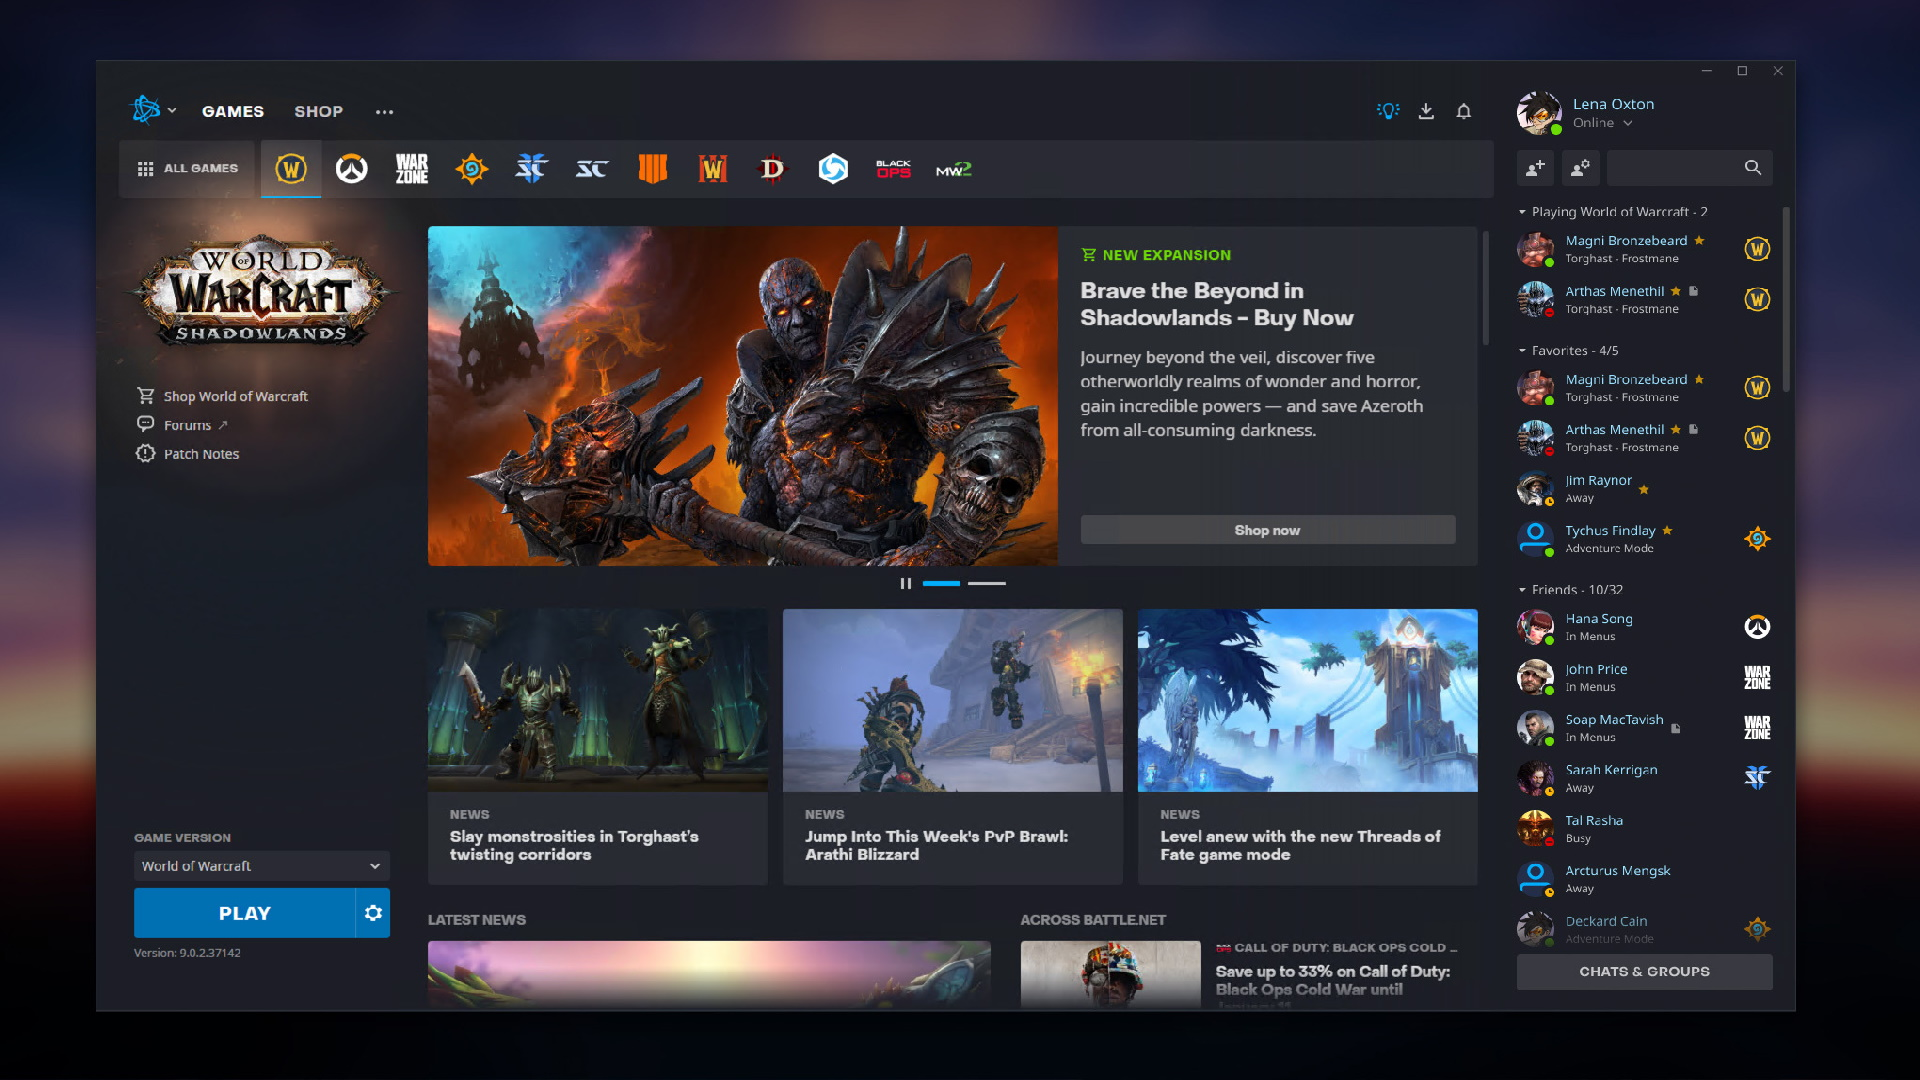 The new Battle.net launcher's homepage.